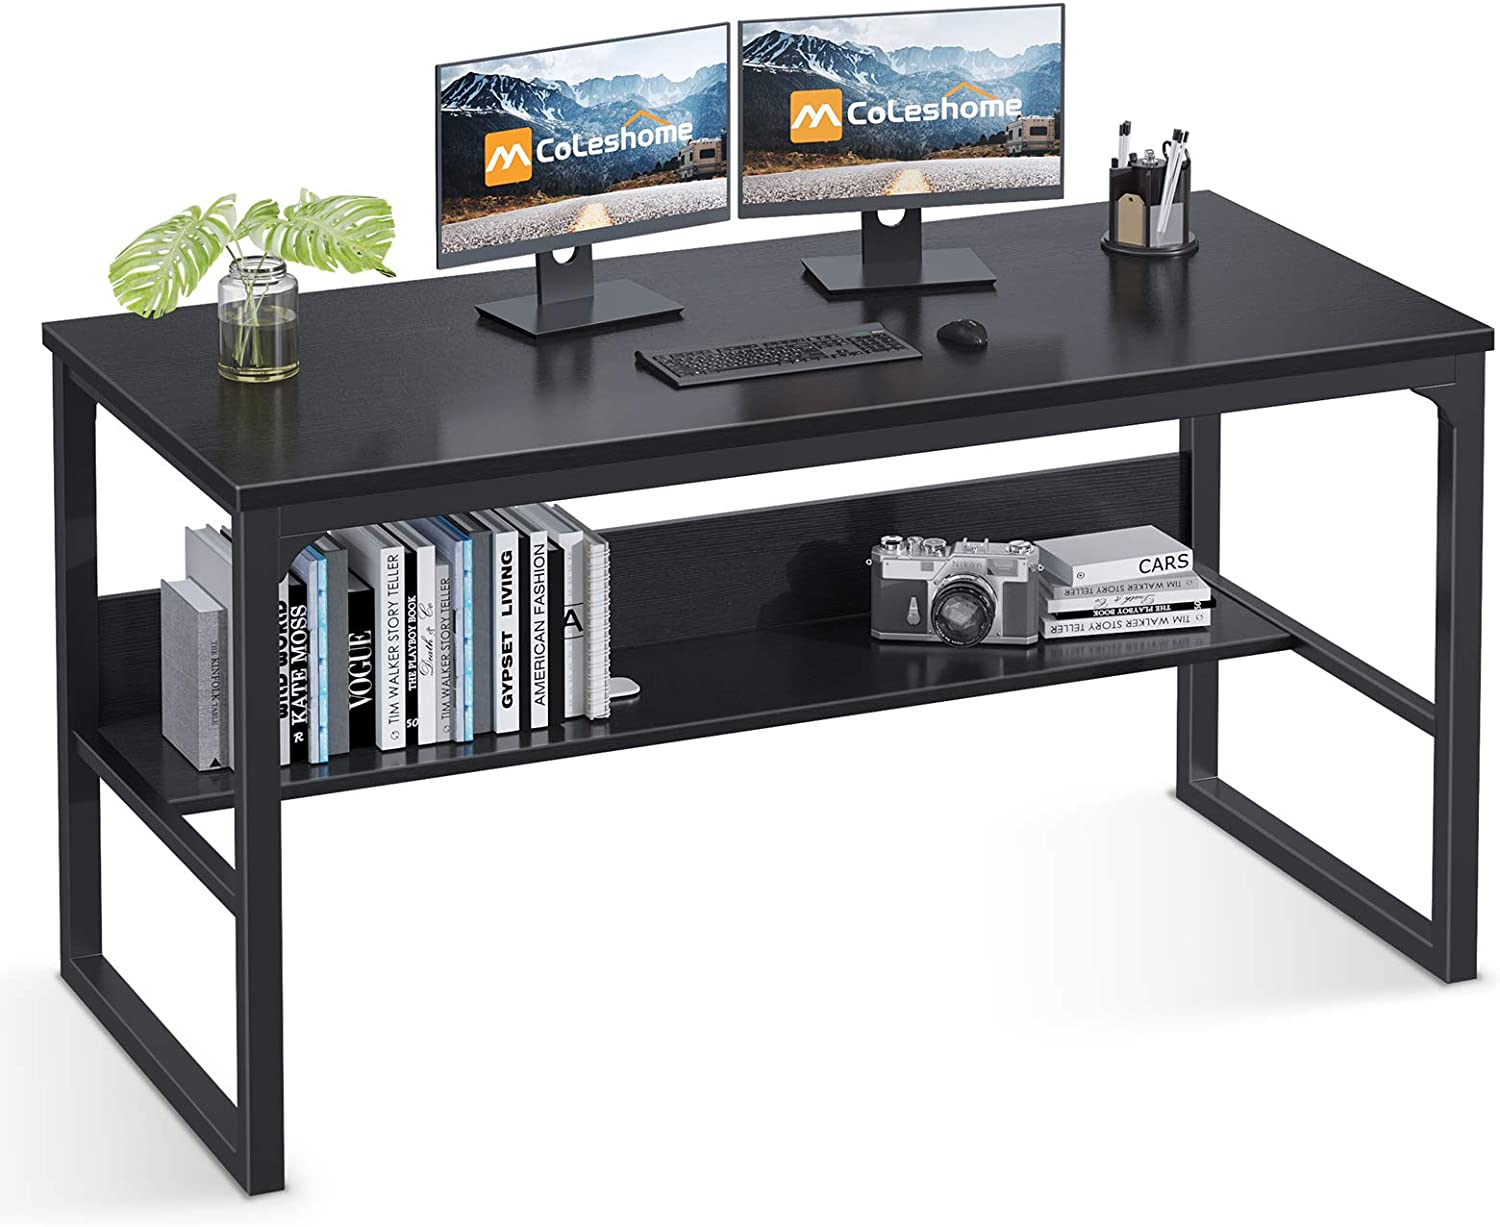 "Coleshome Computer Desk with Bookshelf, 47"" Office Desk with Storage, Super Sturdy Writing Desk for Home Office, Black"